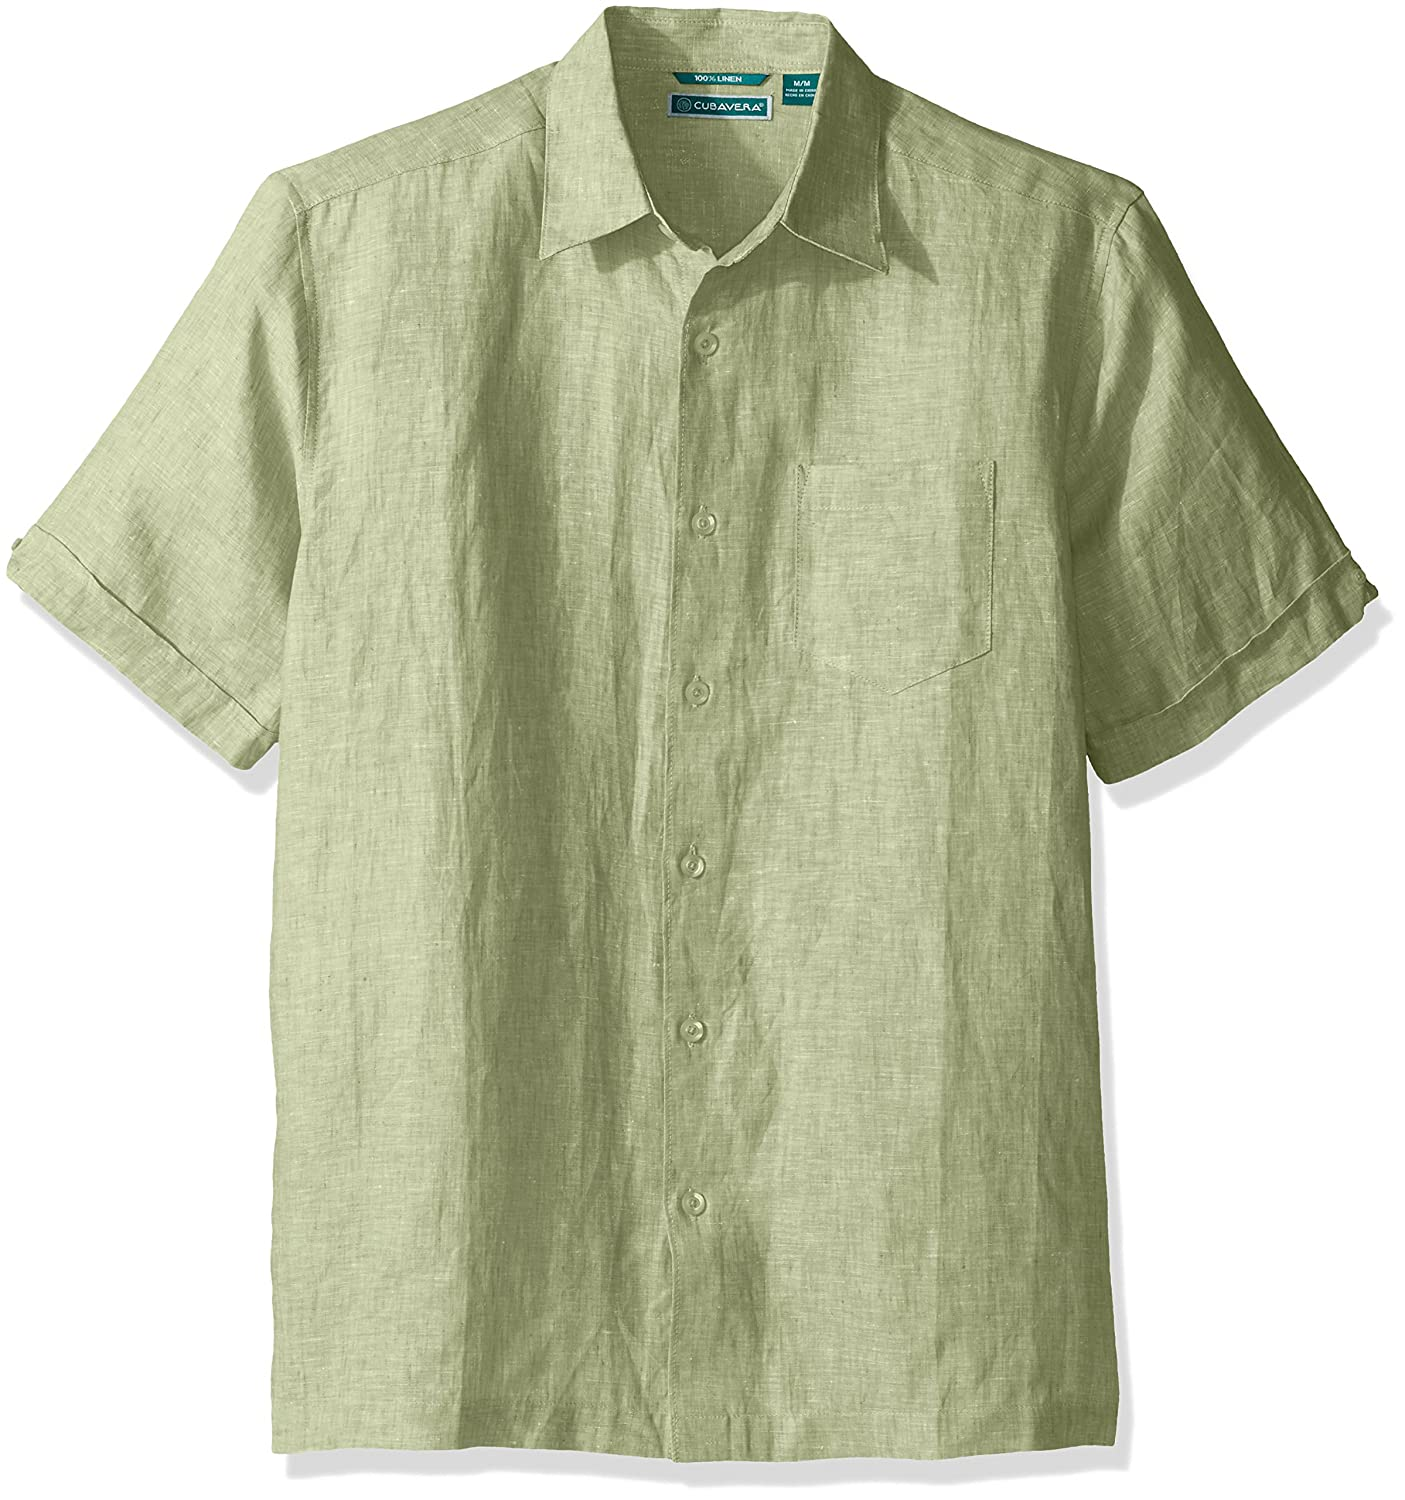 Cuba Vera mens big-tall Big and Tall Cross Dyed 100% Linen Short Sleeve Woven Shirt Cubavera CUWS5B5B